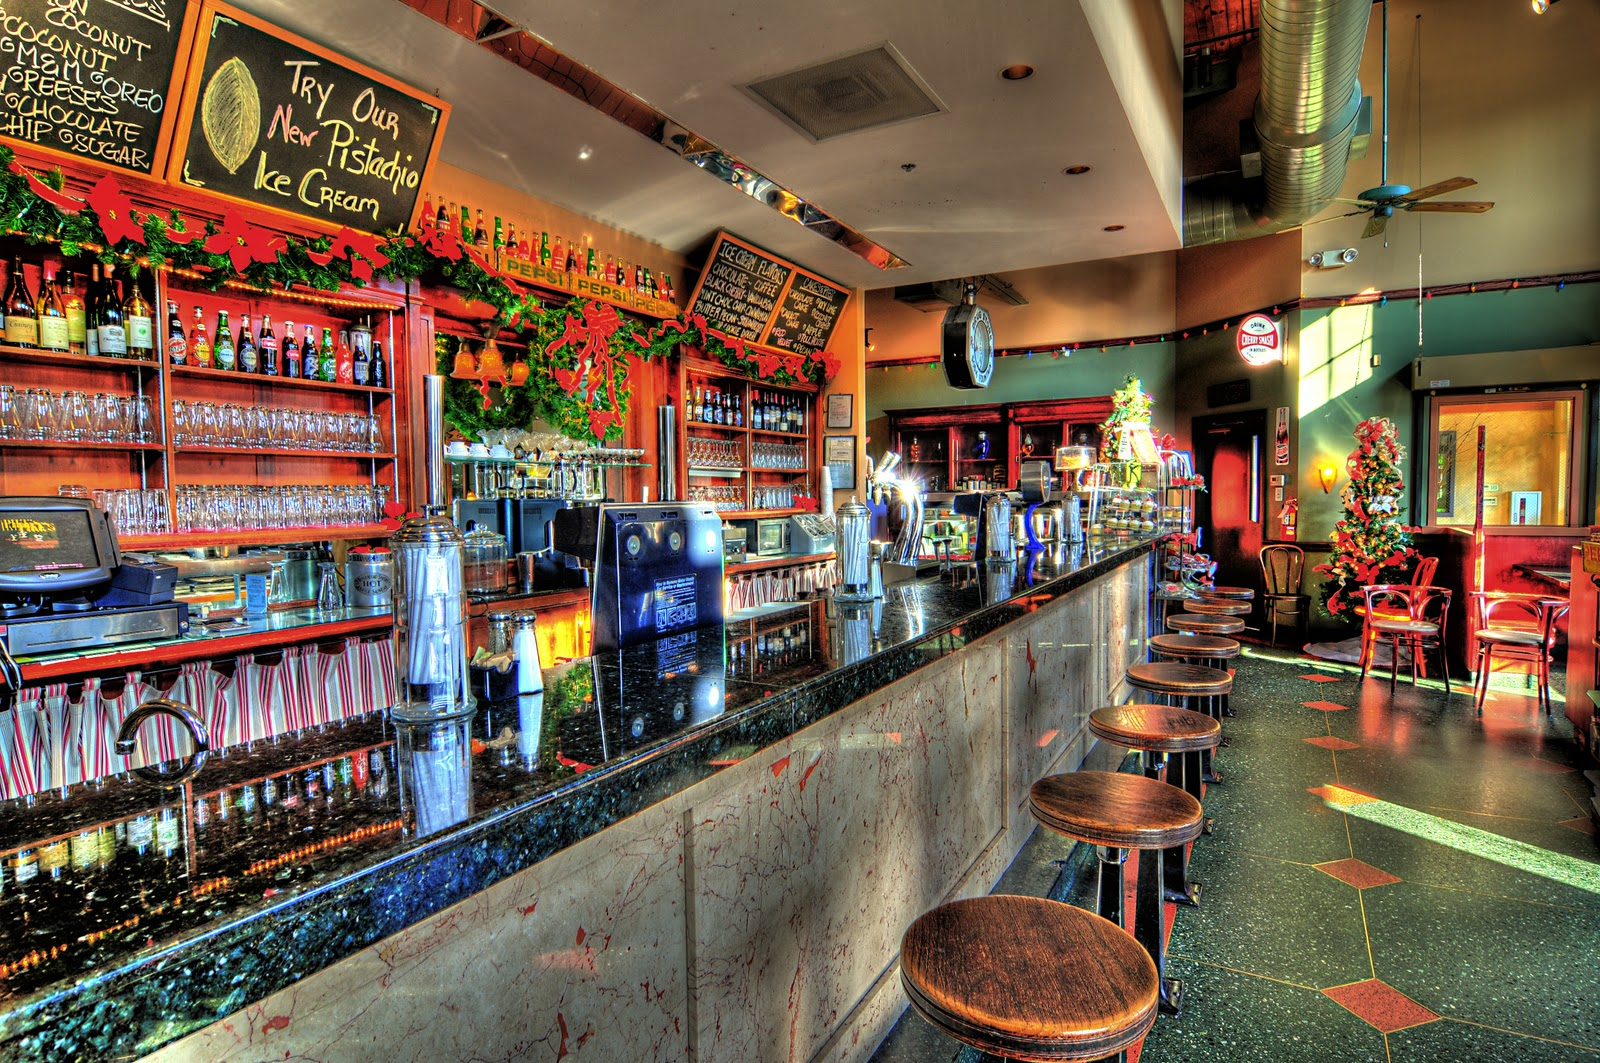 Uncc 39 s food for thought pike 39 s old fashioned soda shop - Wallpaper store charlotte nc ...